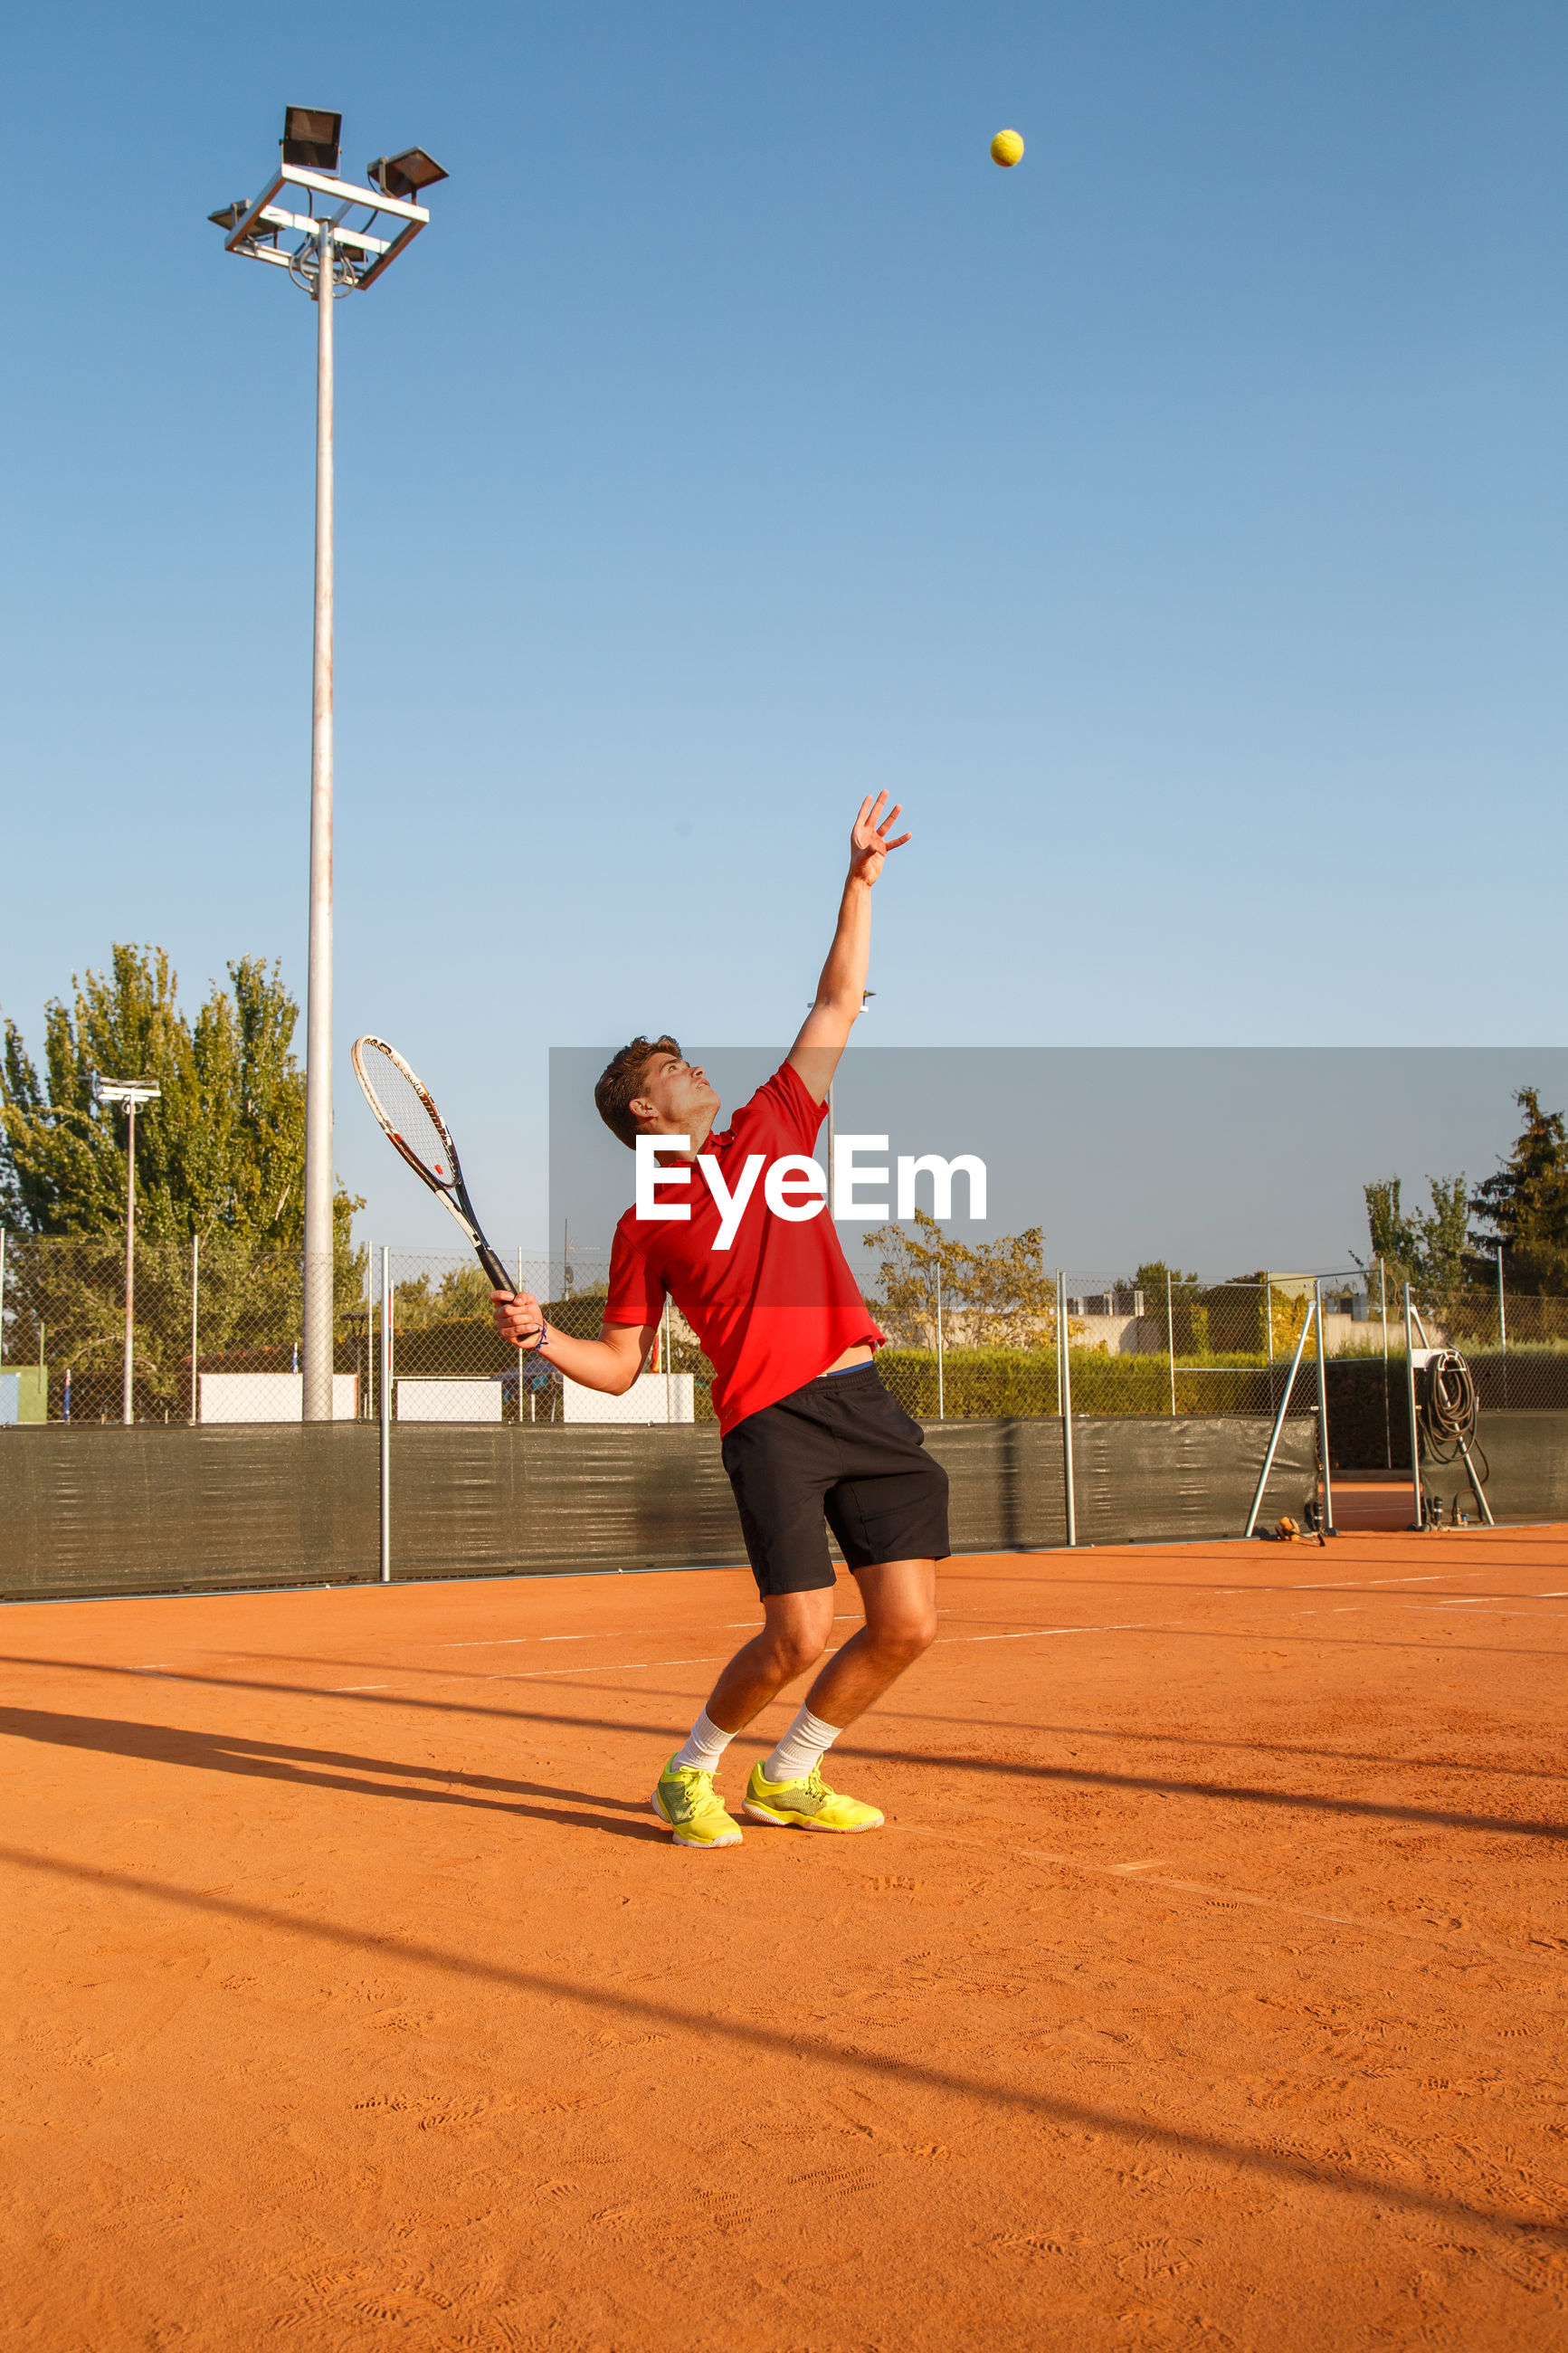 Man playing tennis on court against clear blue sky